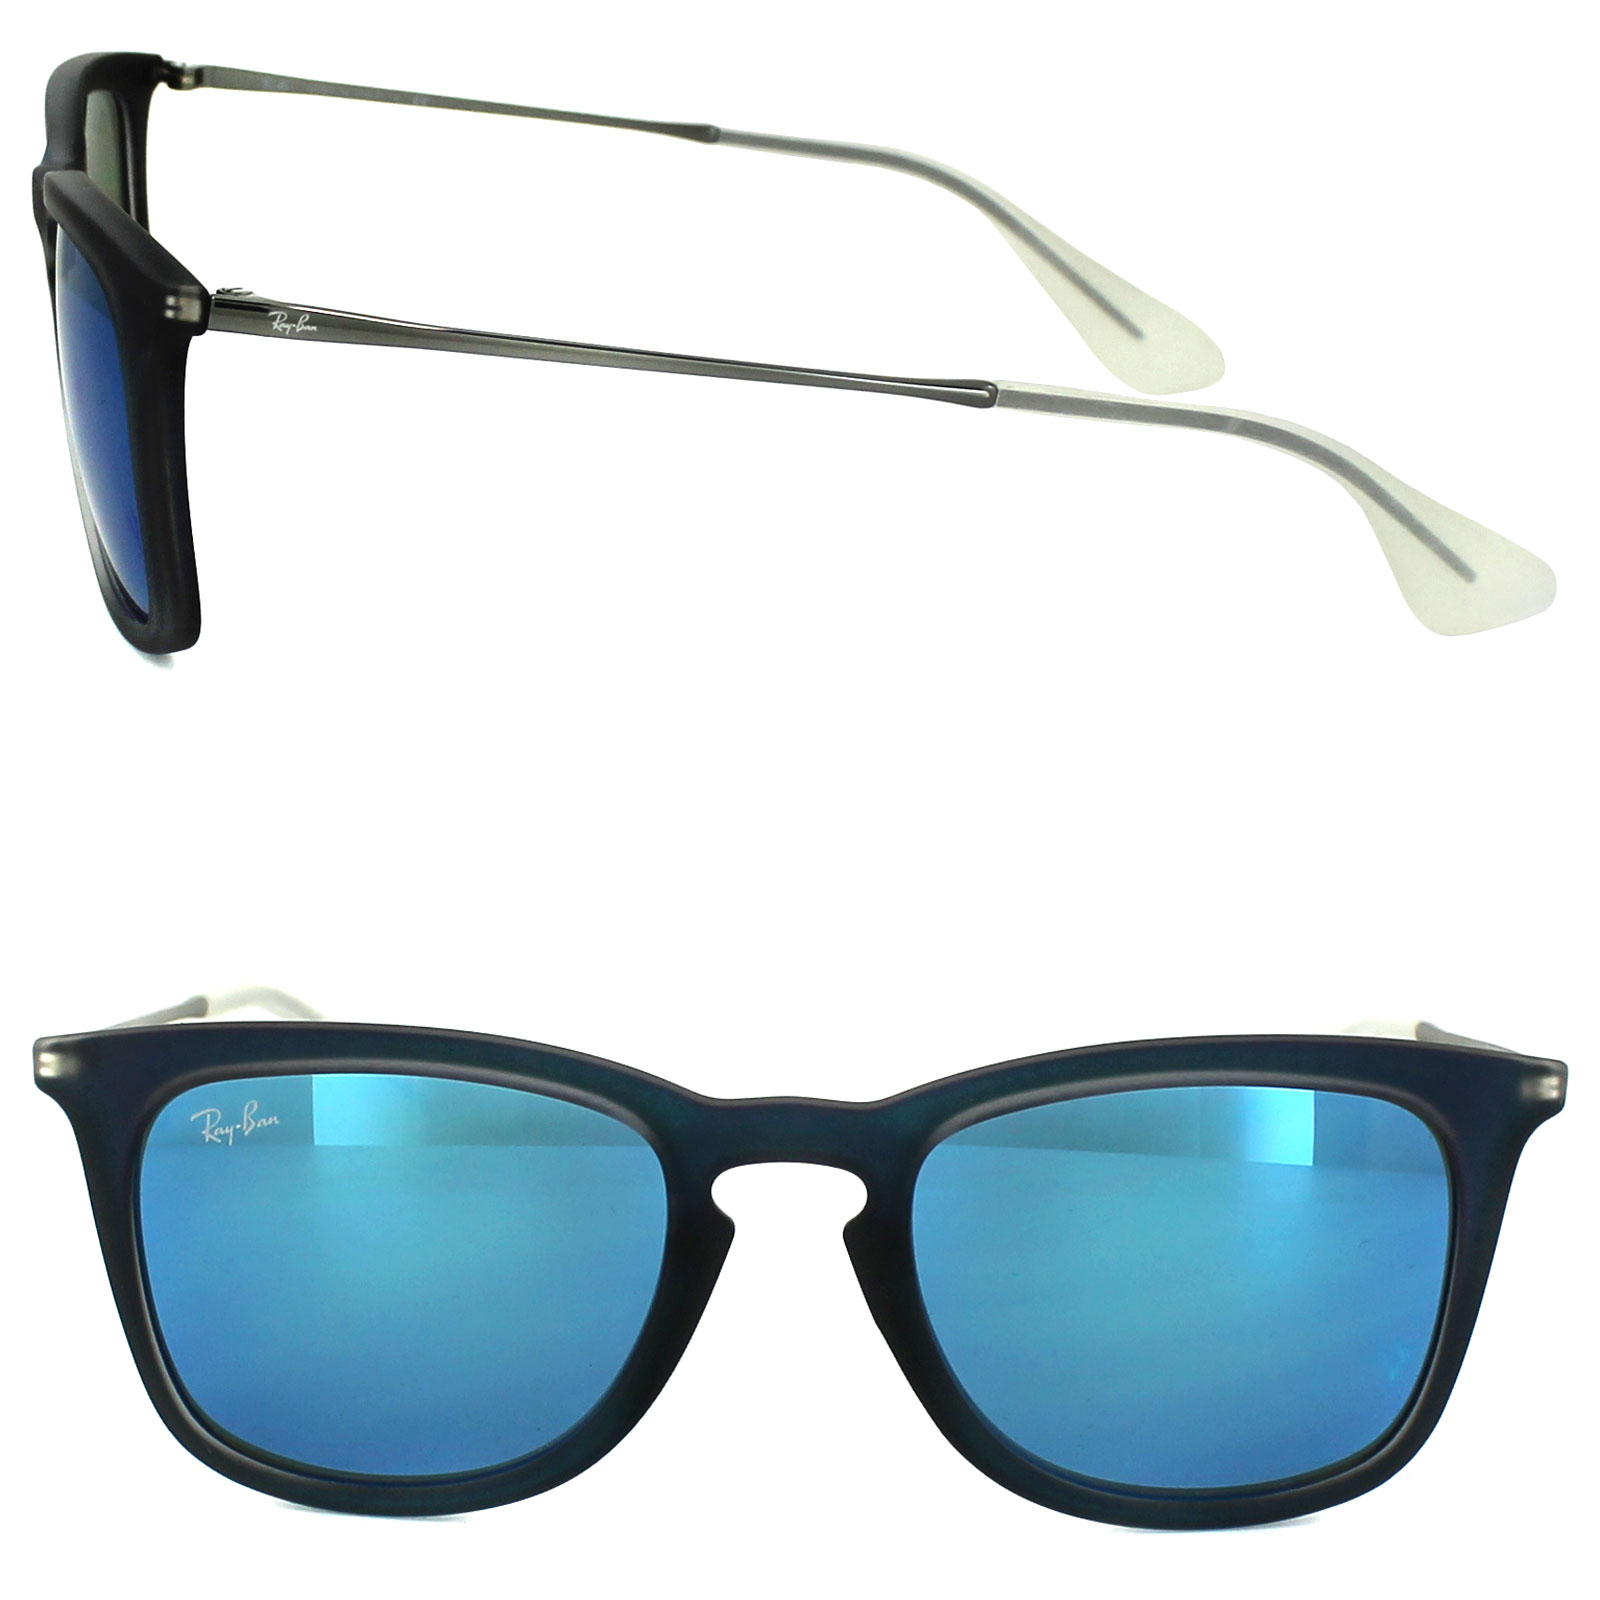 ed32954dc0 Sentinel Ray-Ban Sunglasses 4221 617055 Blue   Gunmetal Blue Mirror